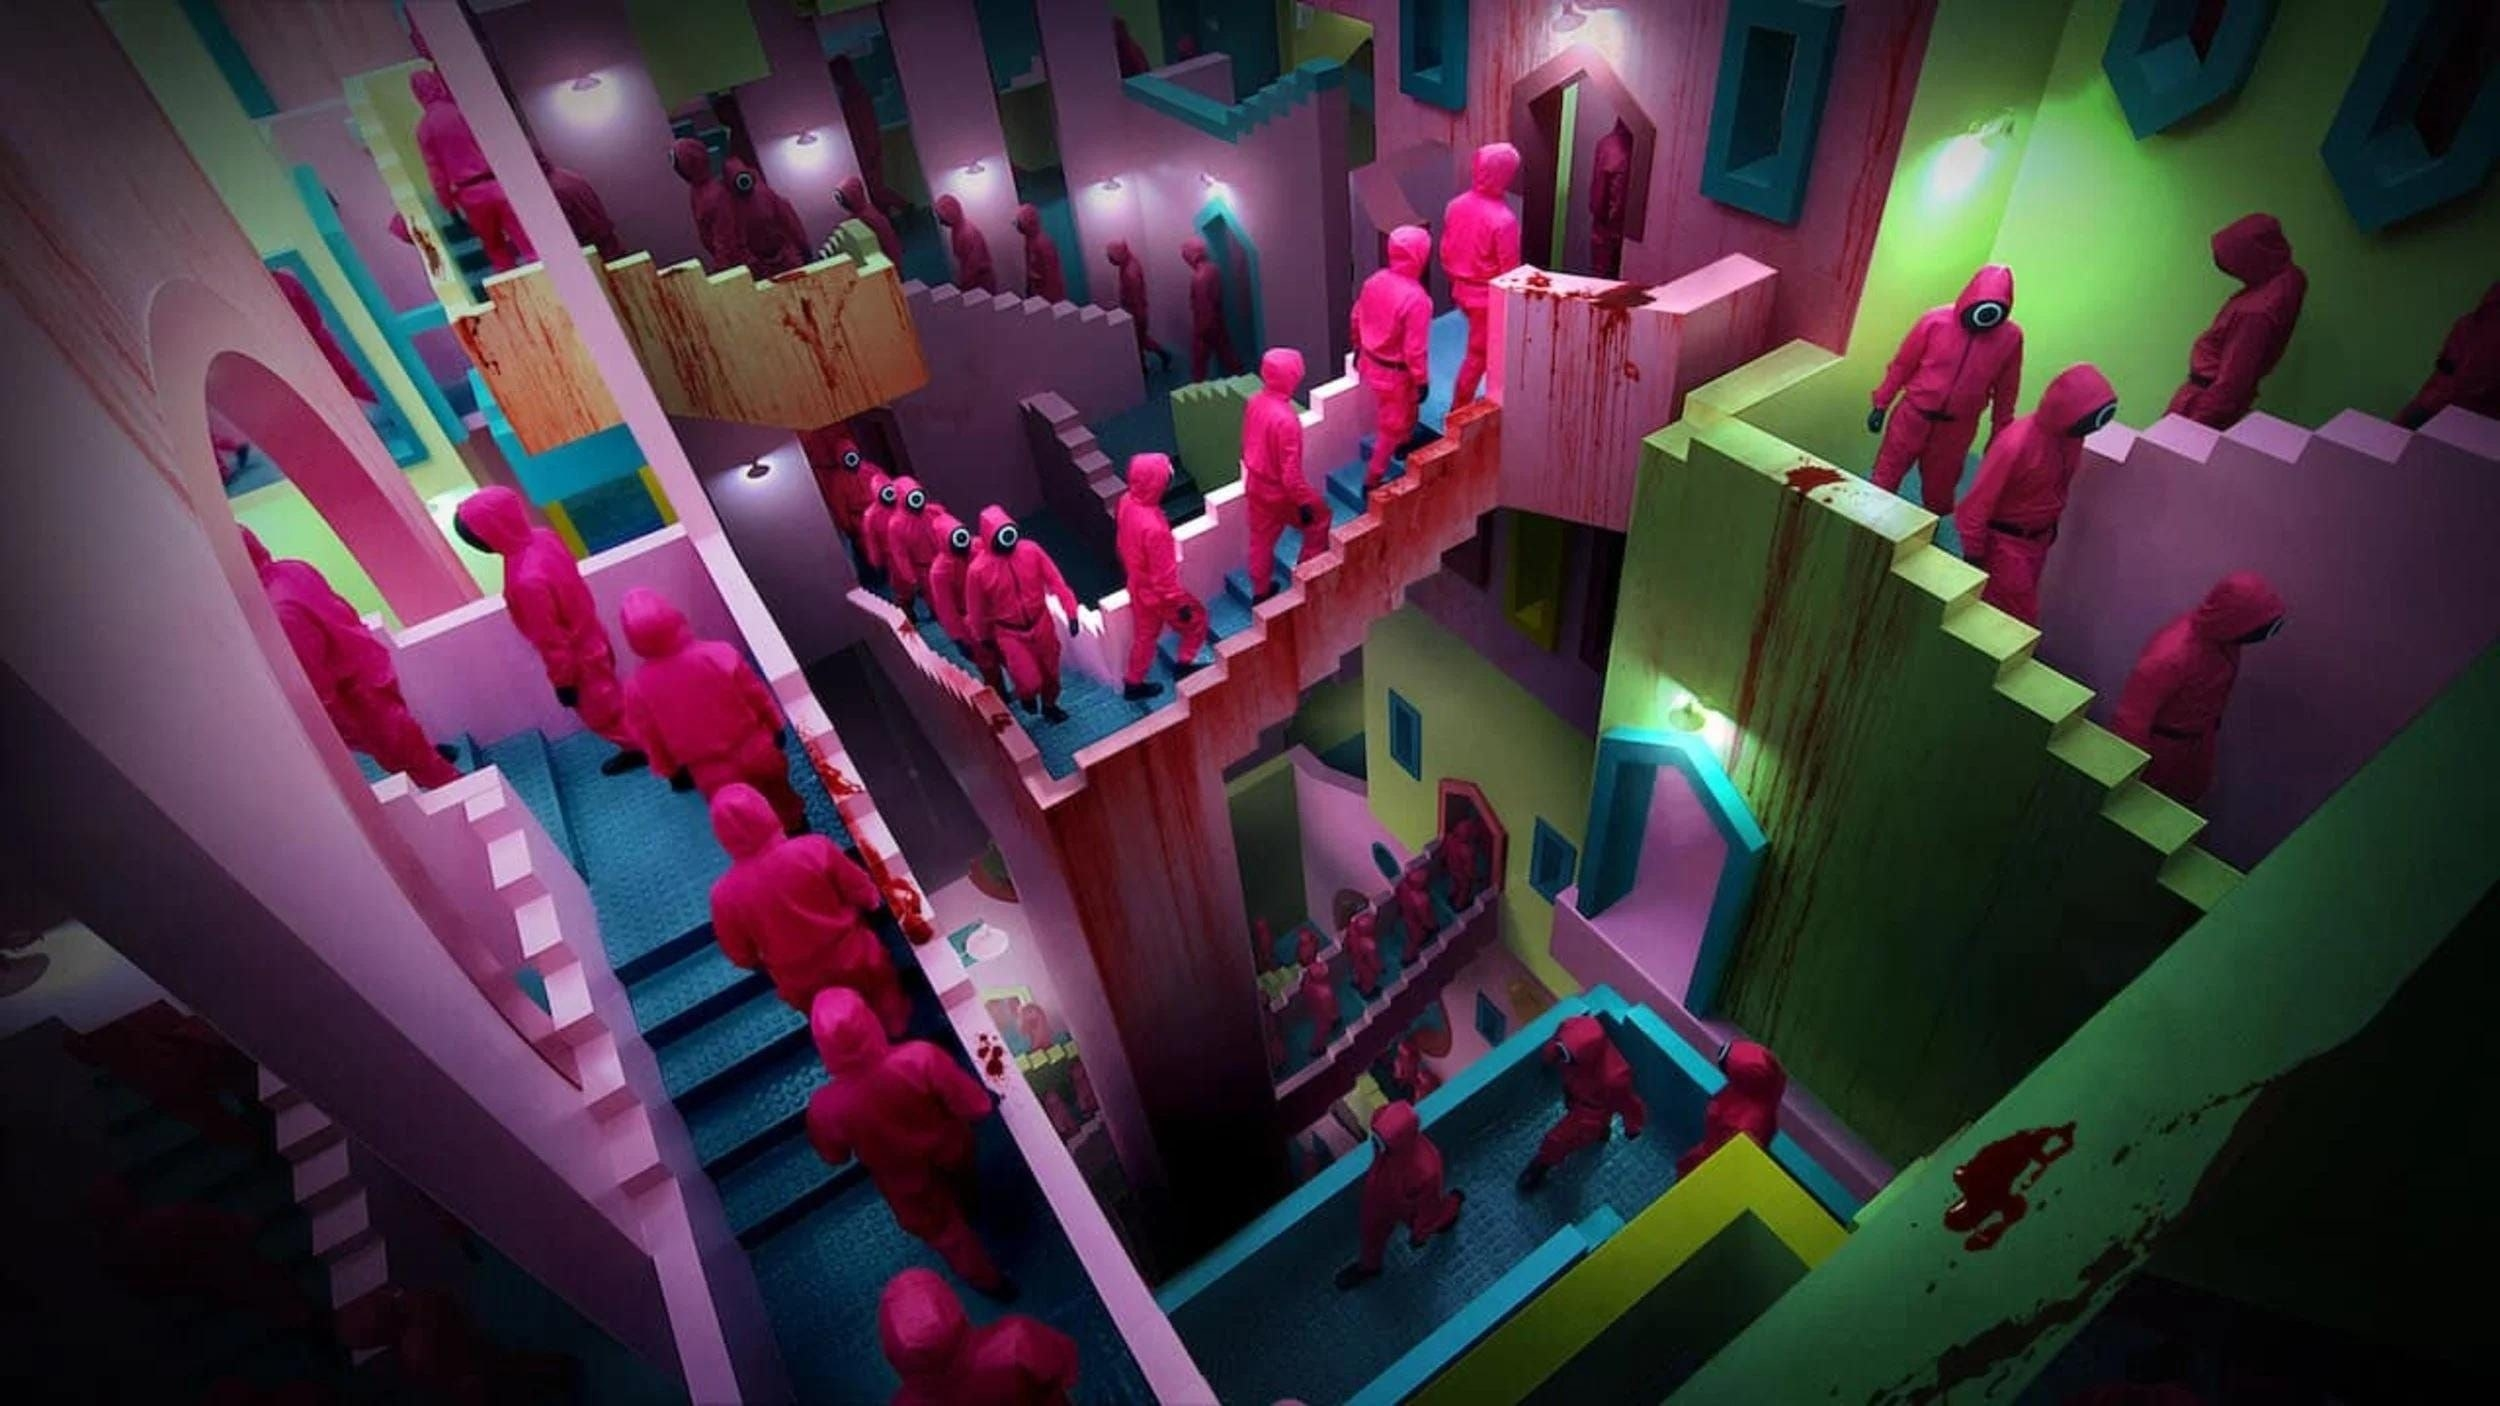 The winding staircases in Squid Game; there are guards walking up and down them